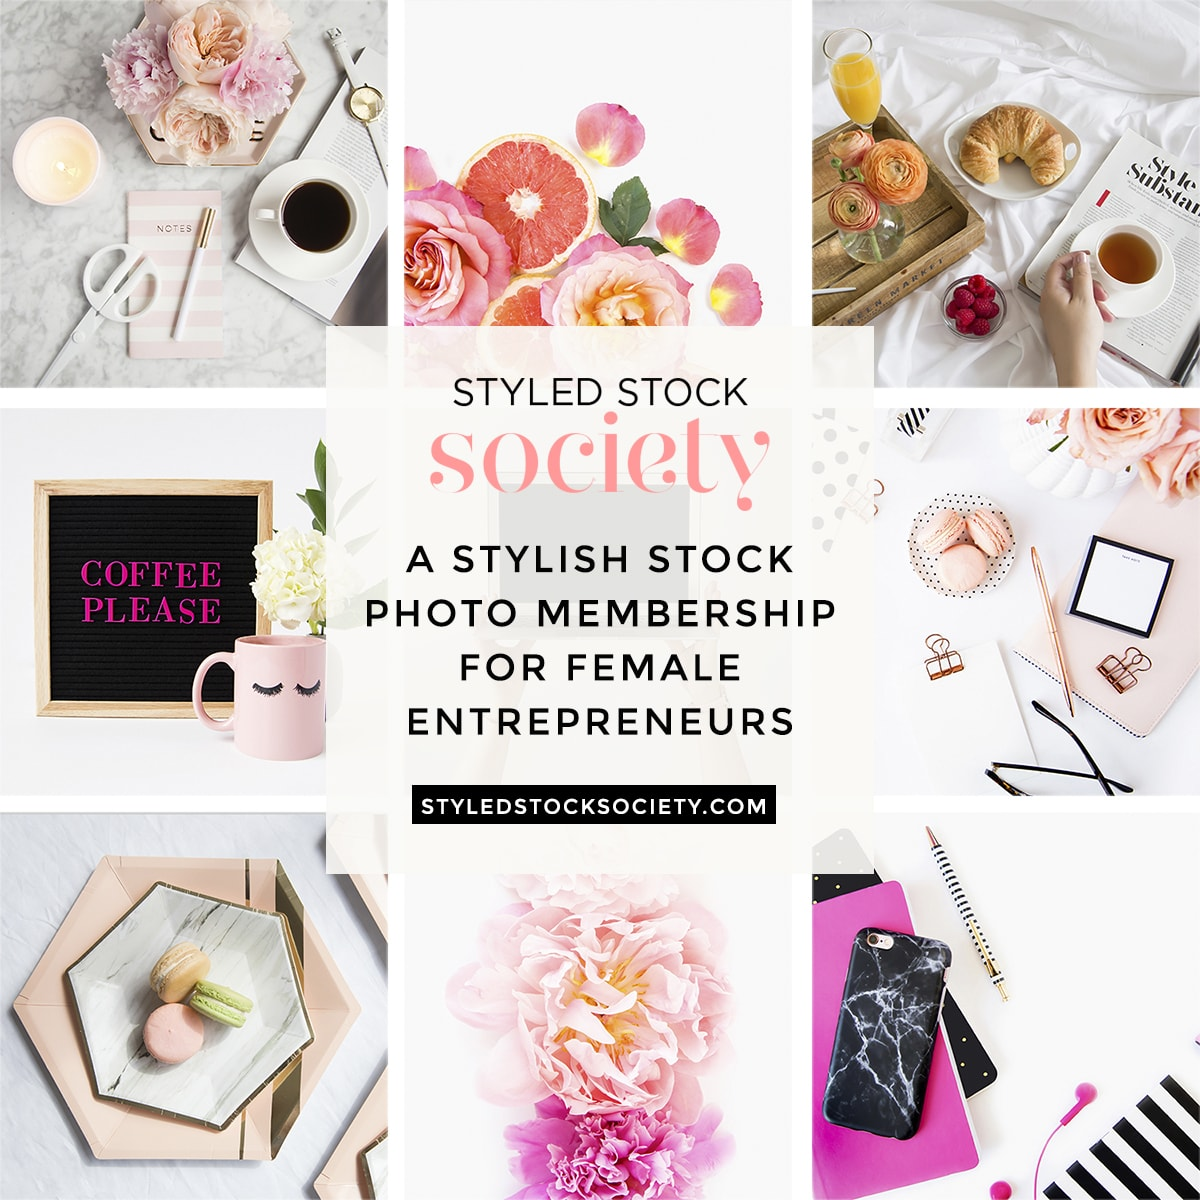 Styled stock society styled stock photos free stock photos blogging tips blogtips.com